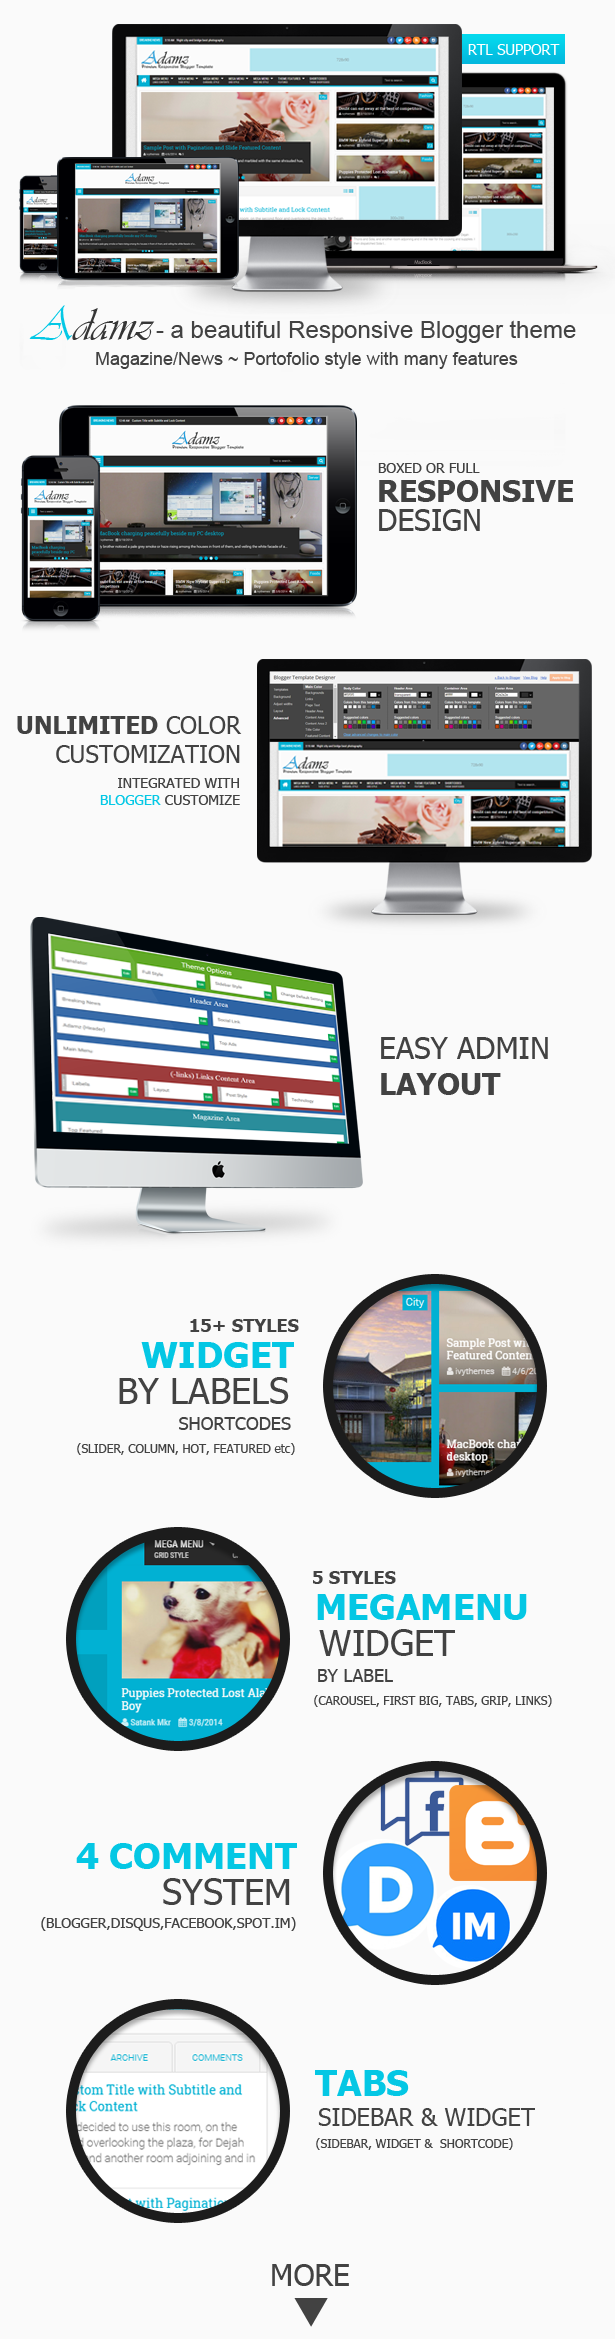 Adamz Blogger Template Features